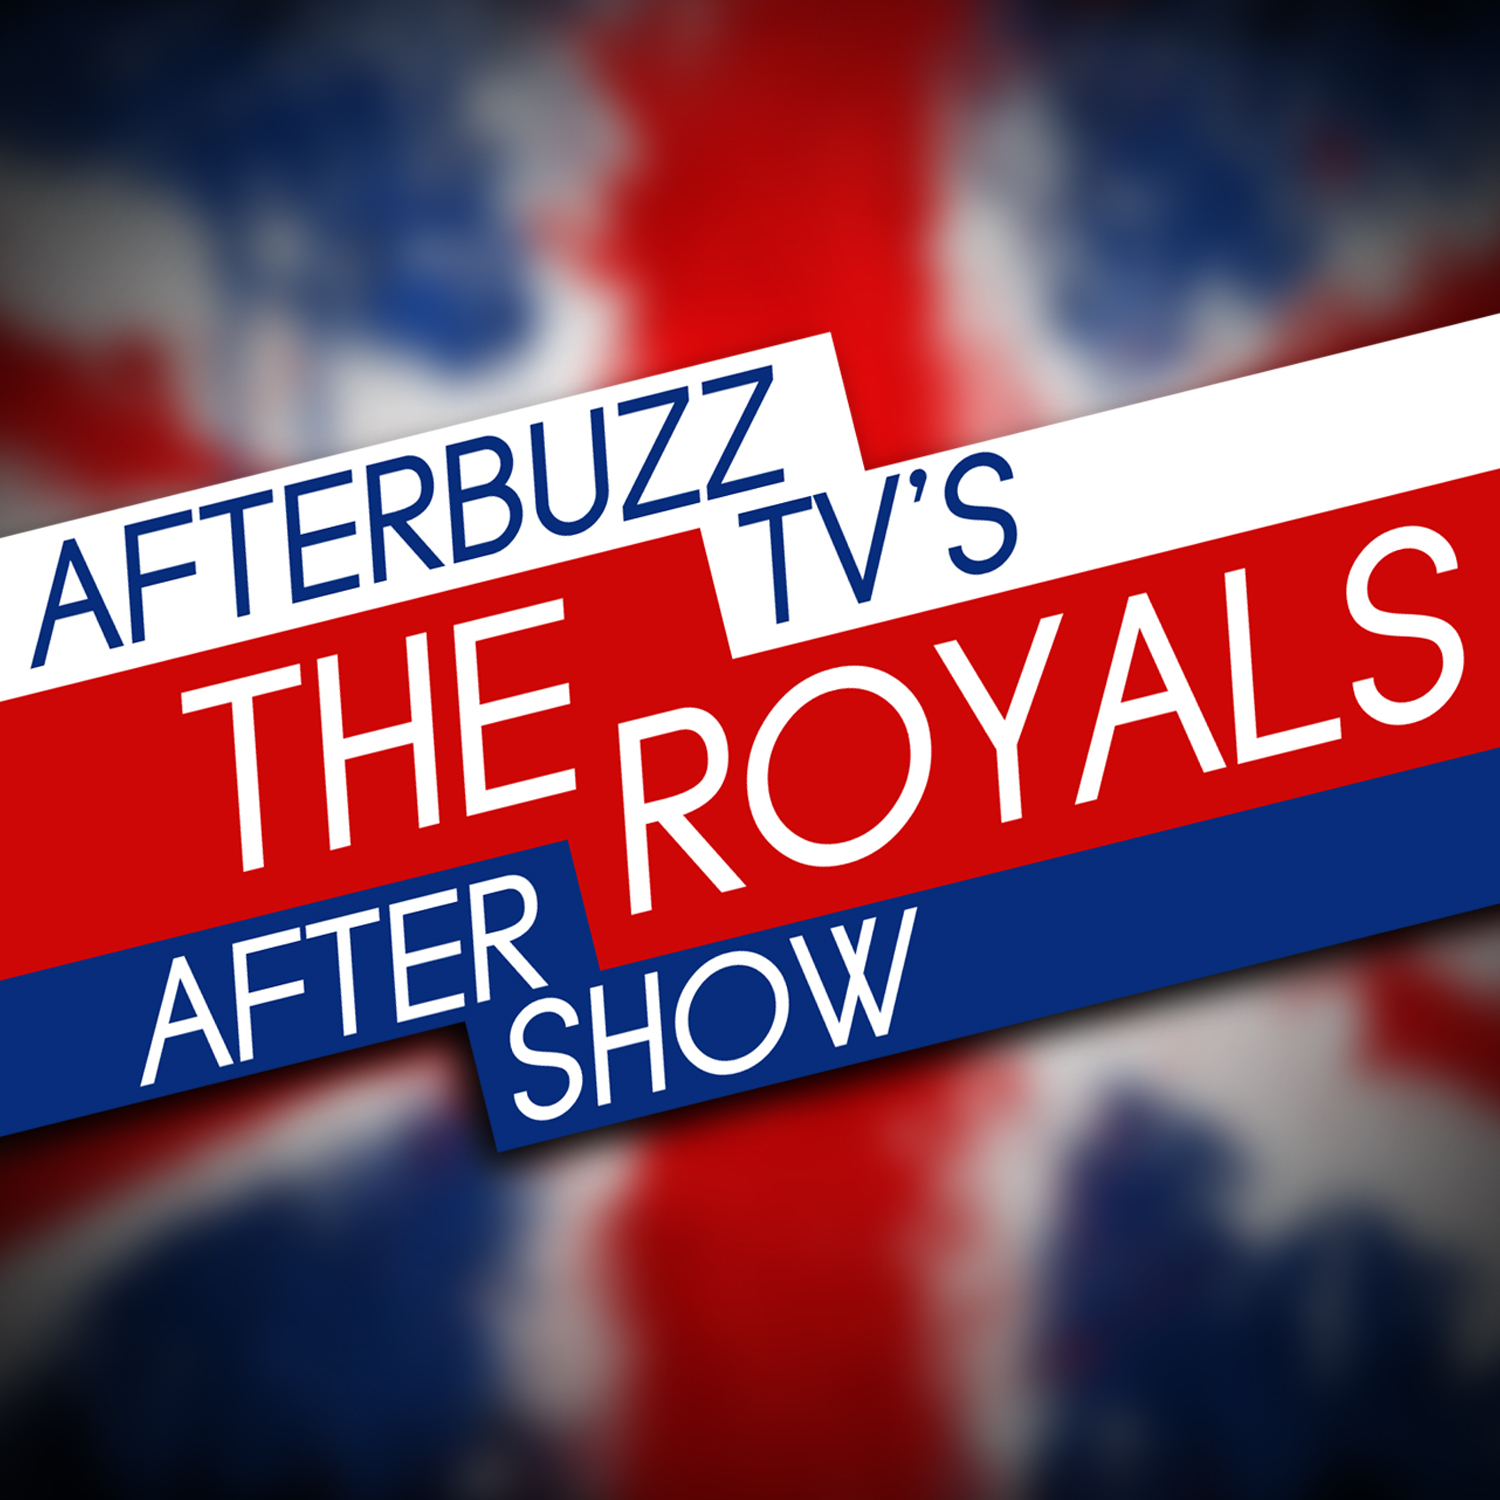 The Royals After Show